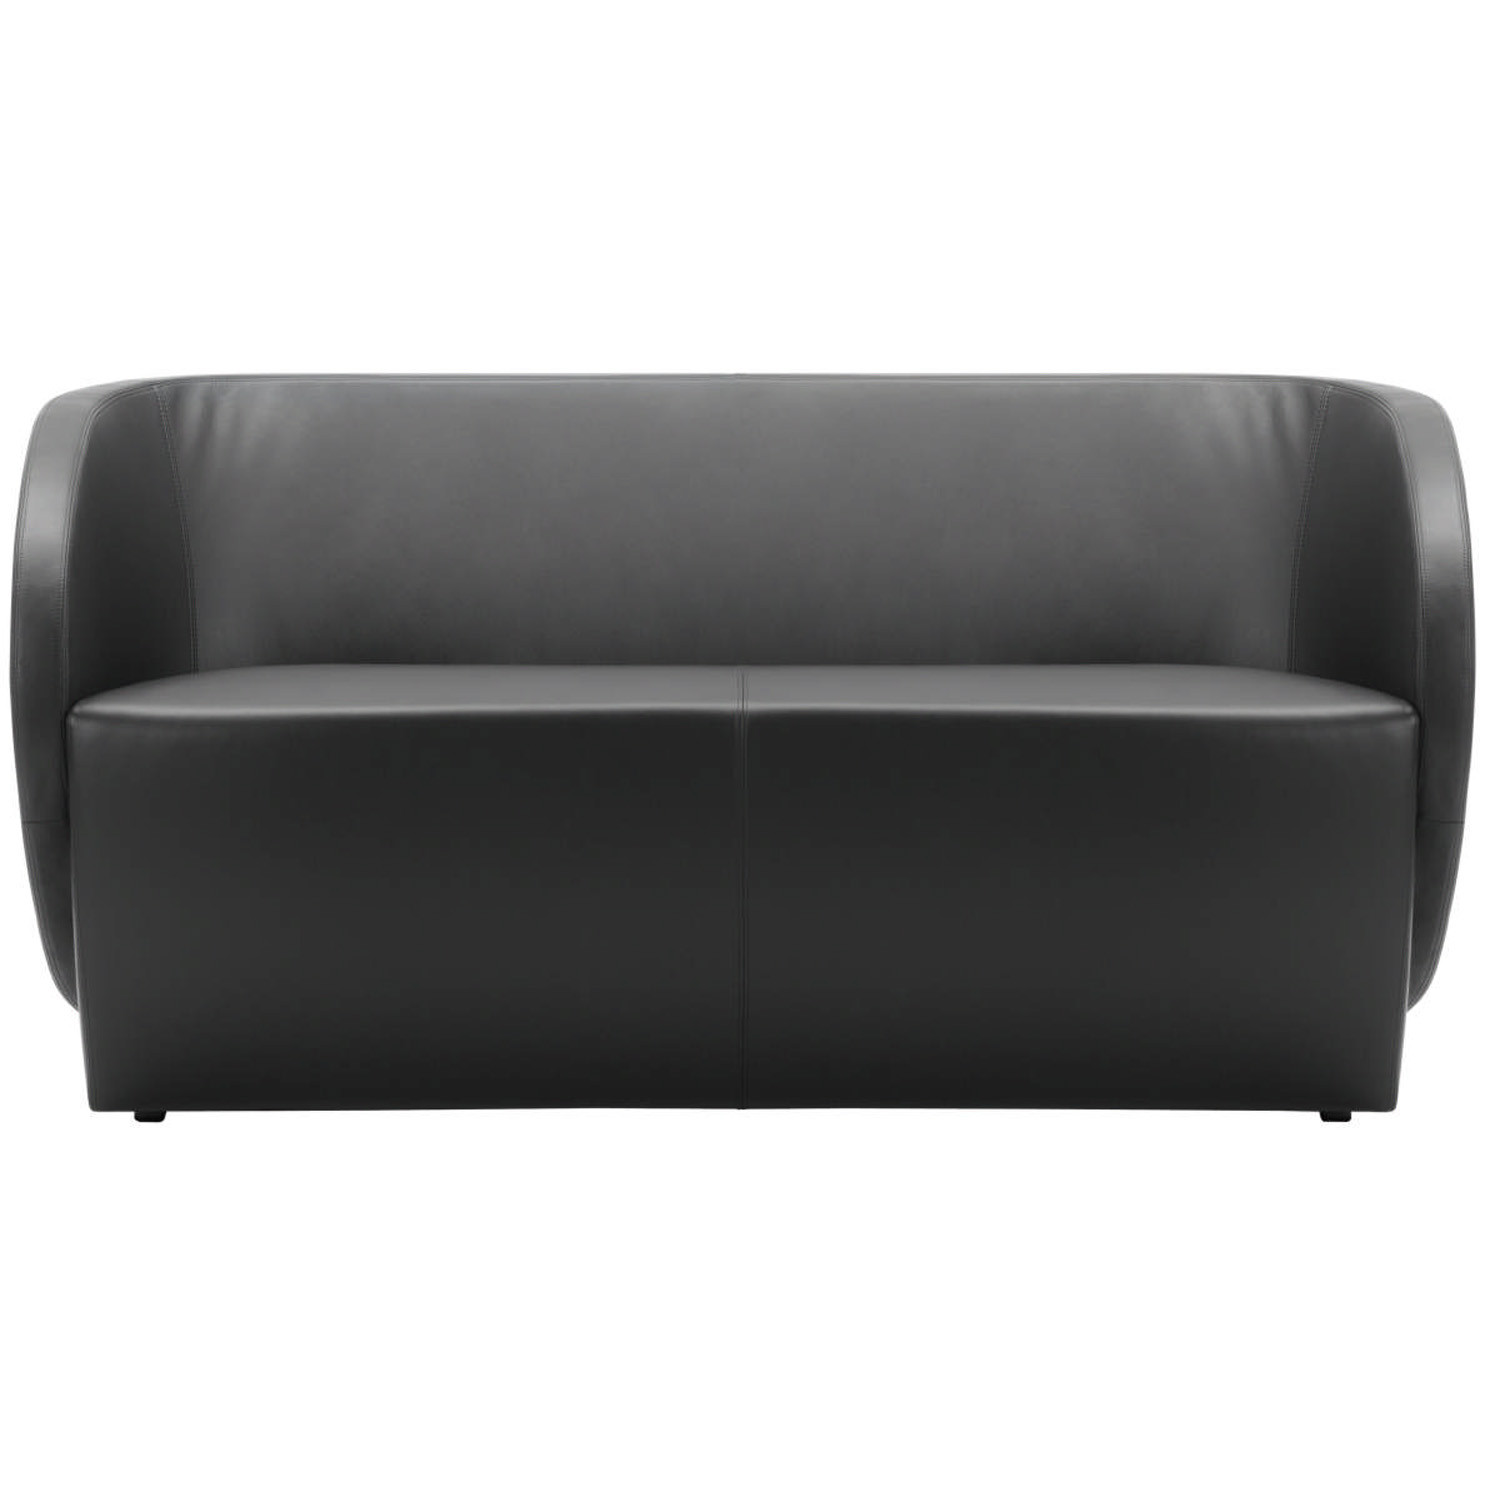 Cala 2-Seater Sofa by Brunner